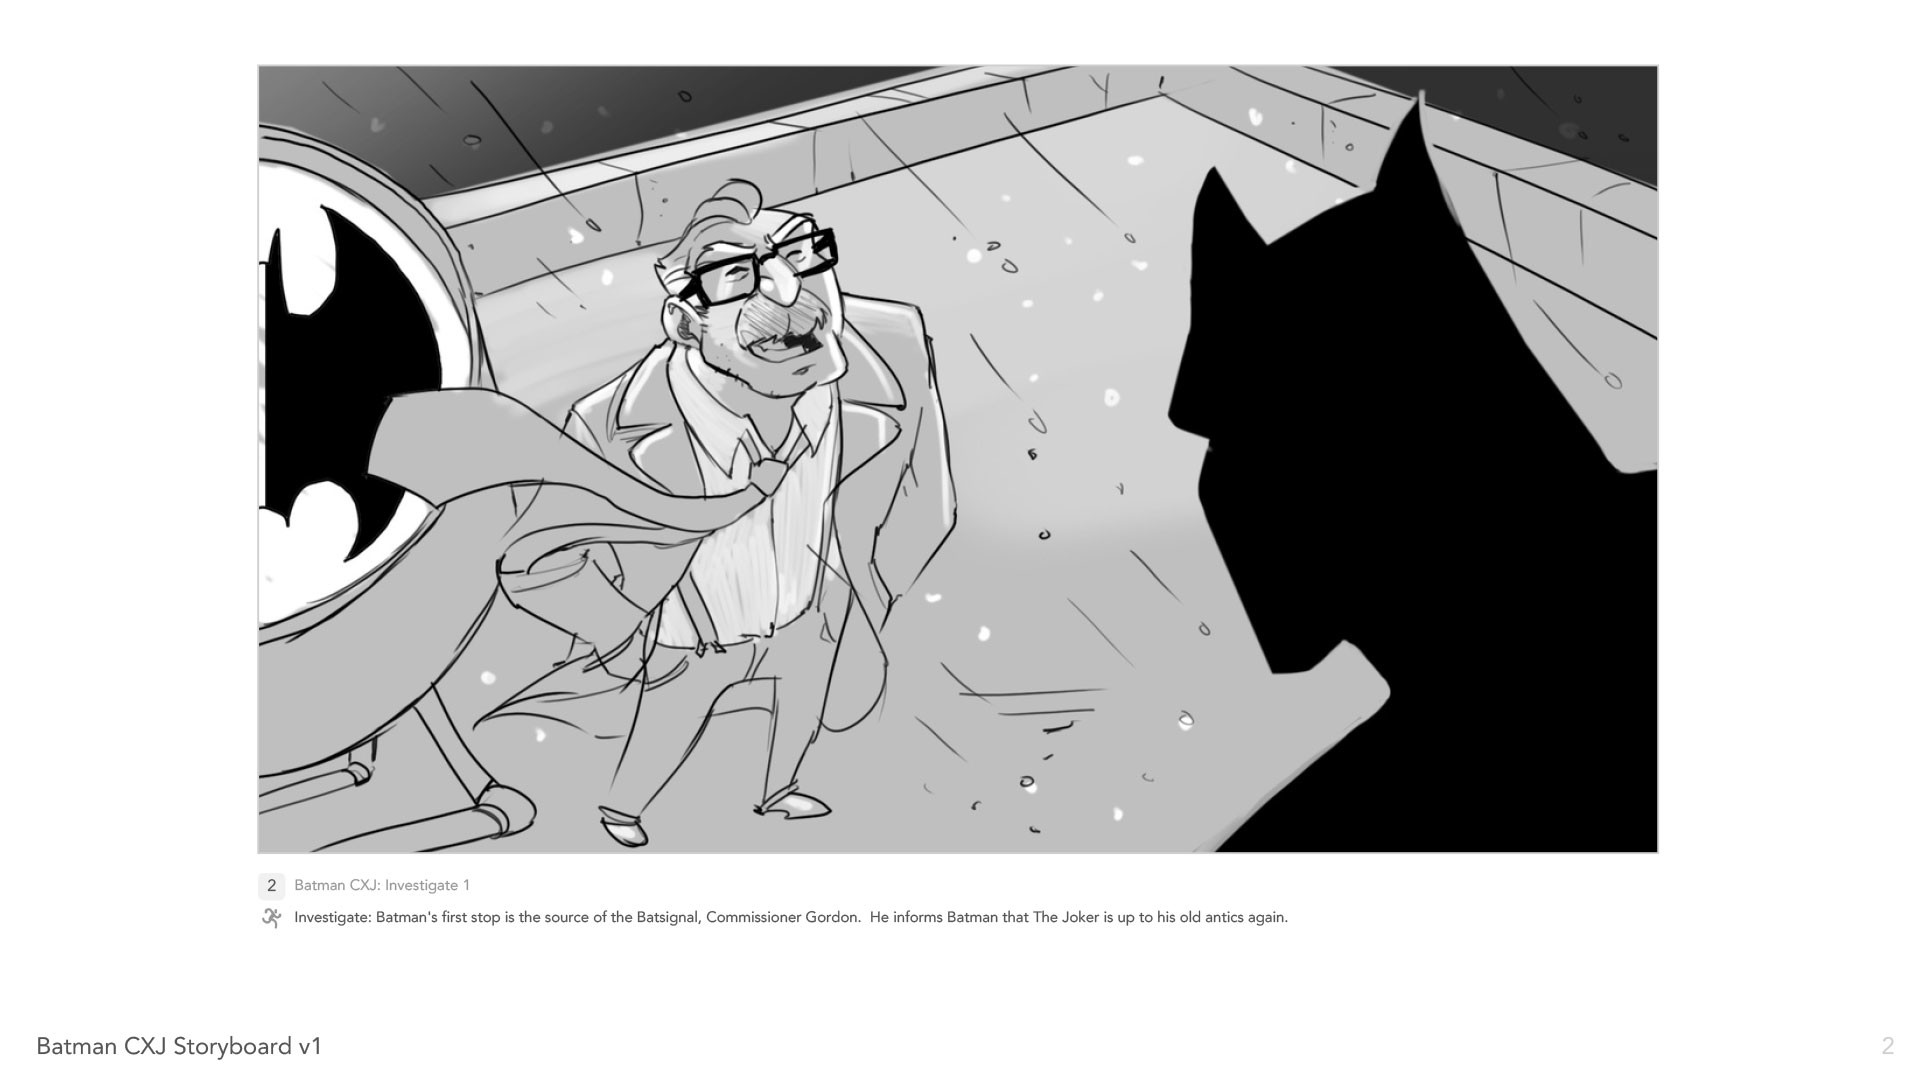 Chx welch batman cxj storyboard v1 3